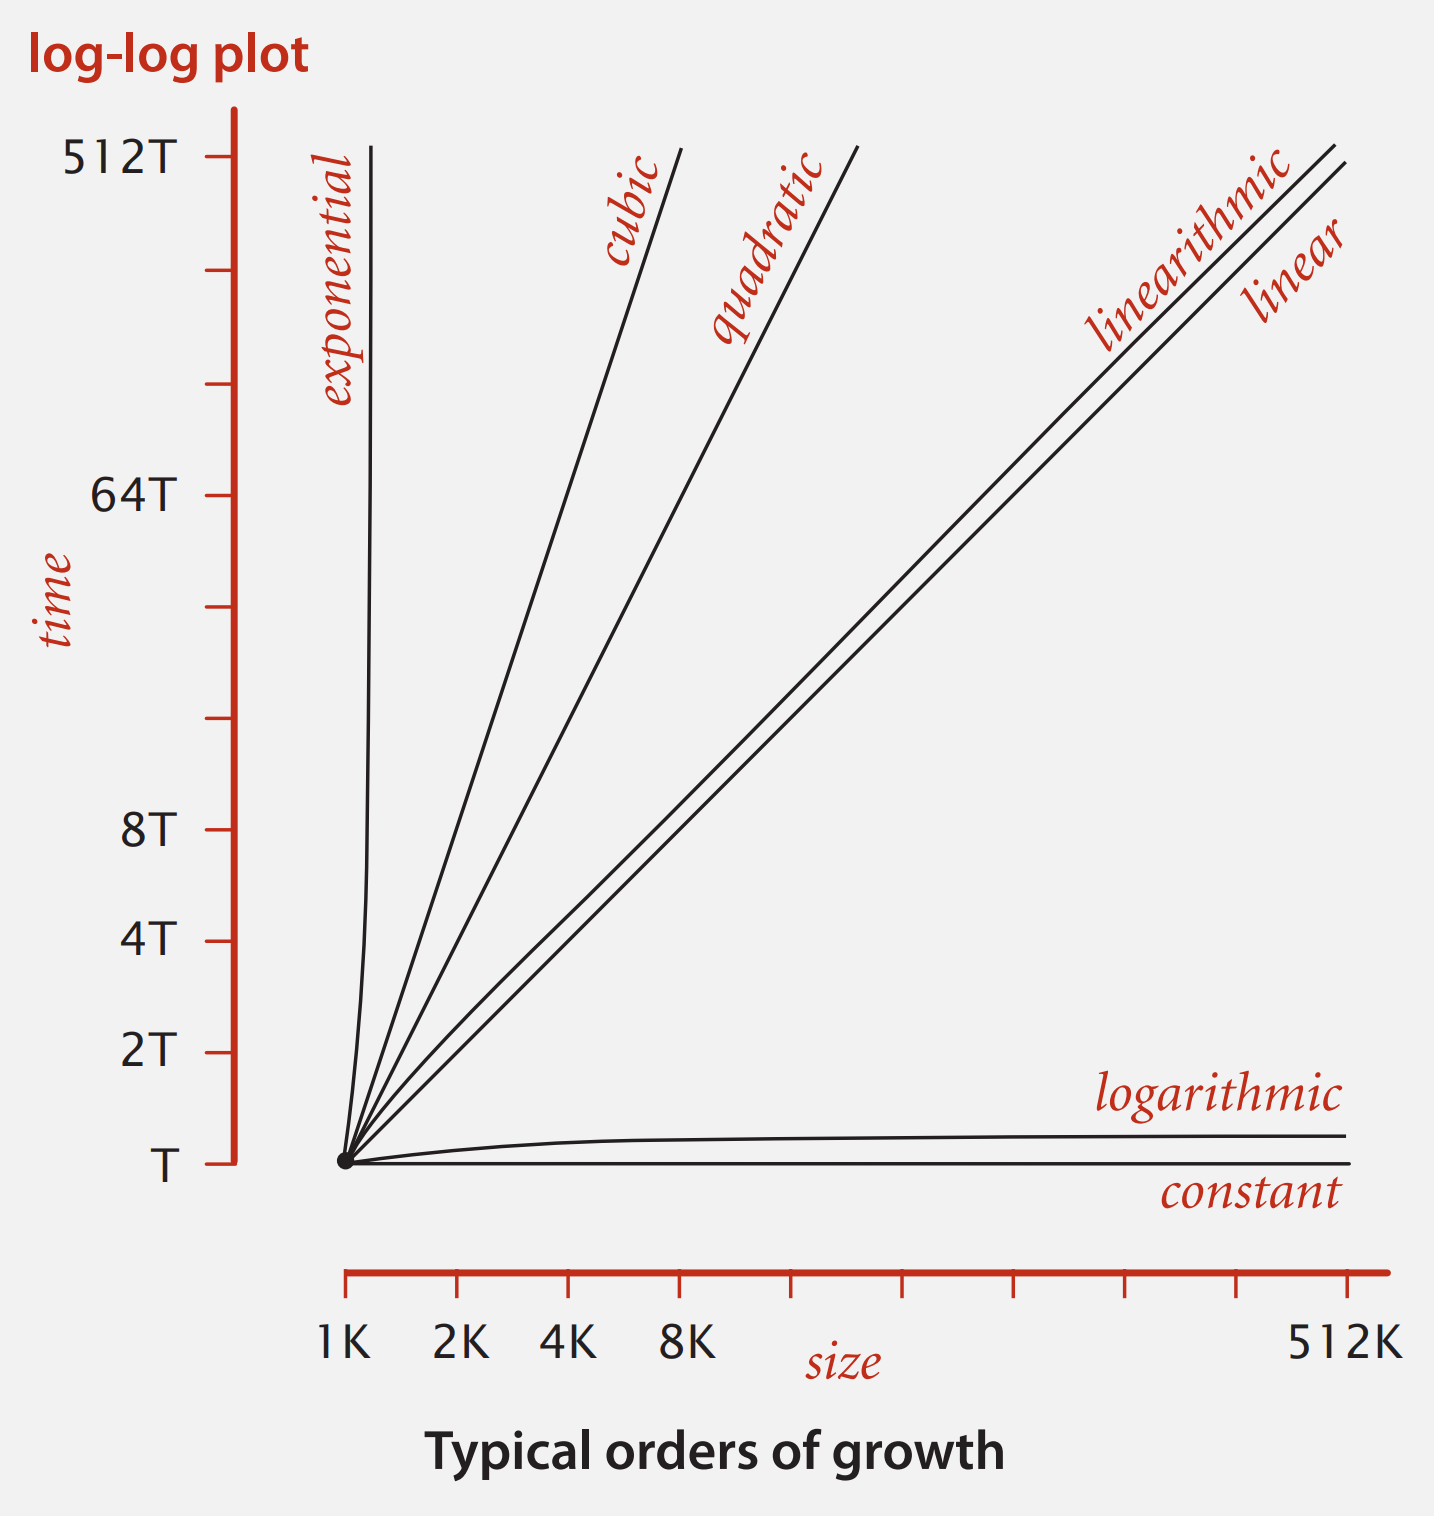 log-log plot of typical orders of growth